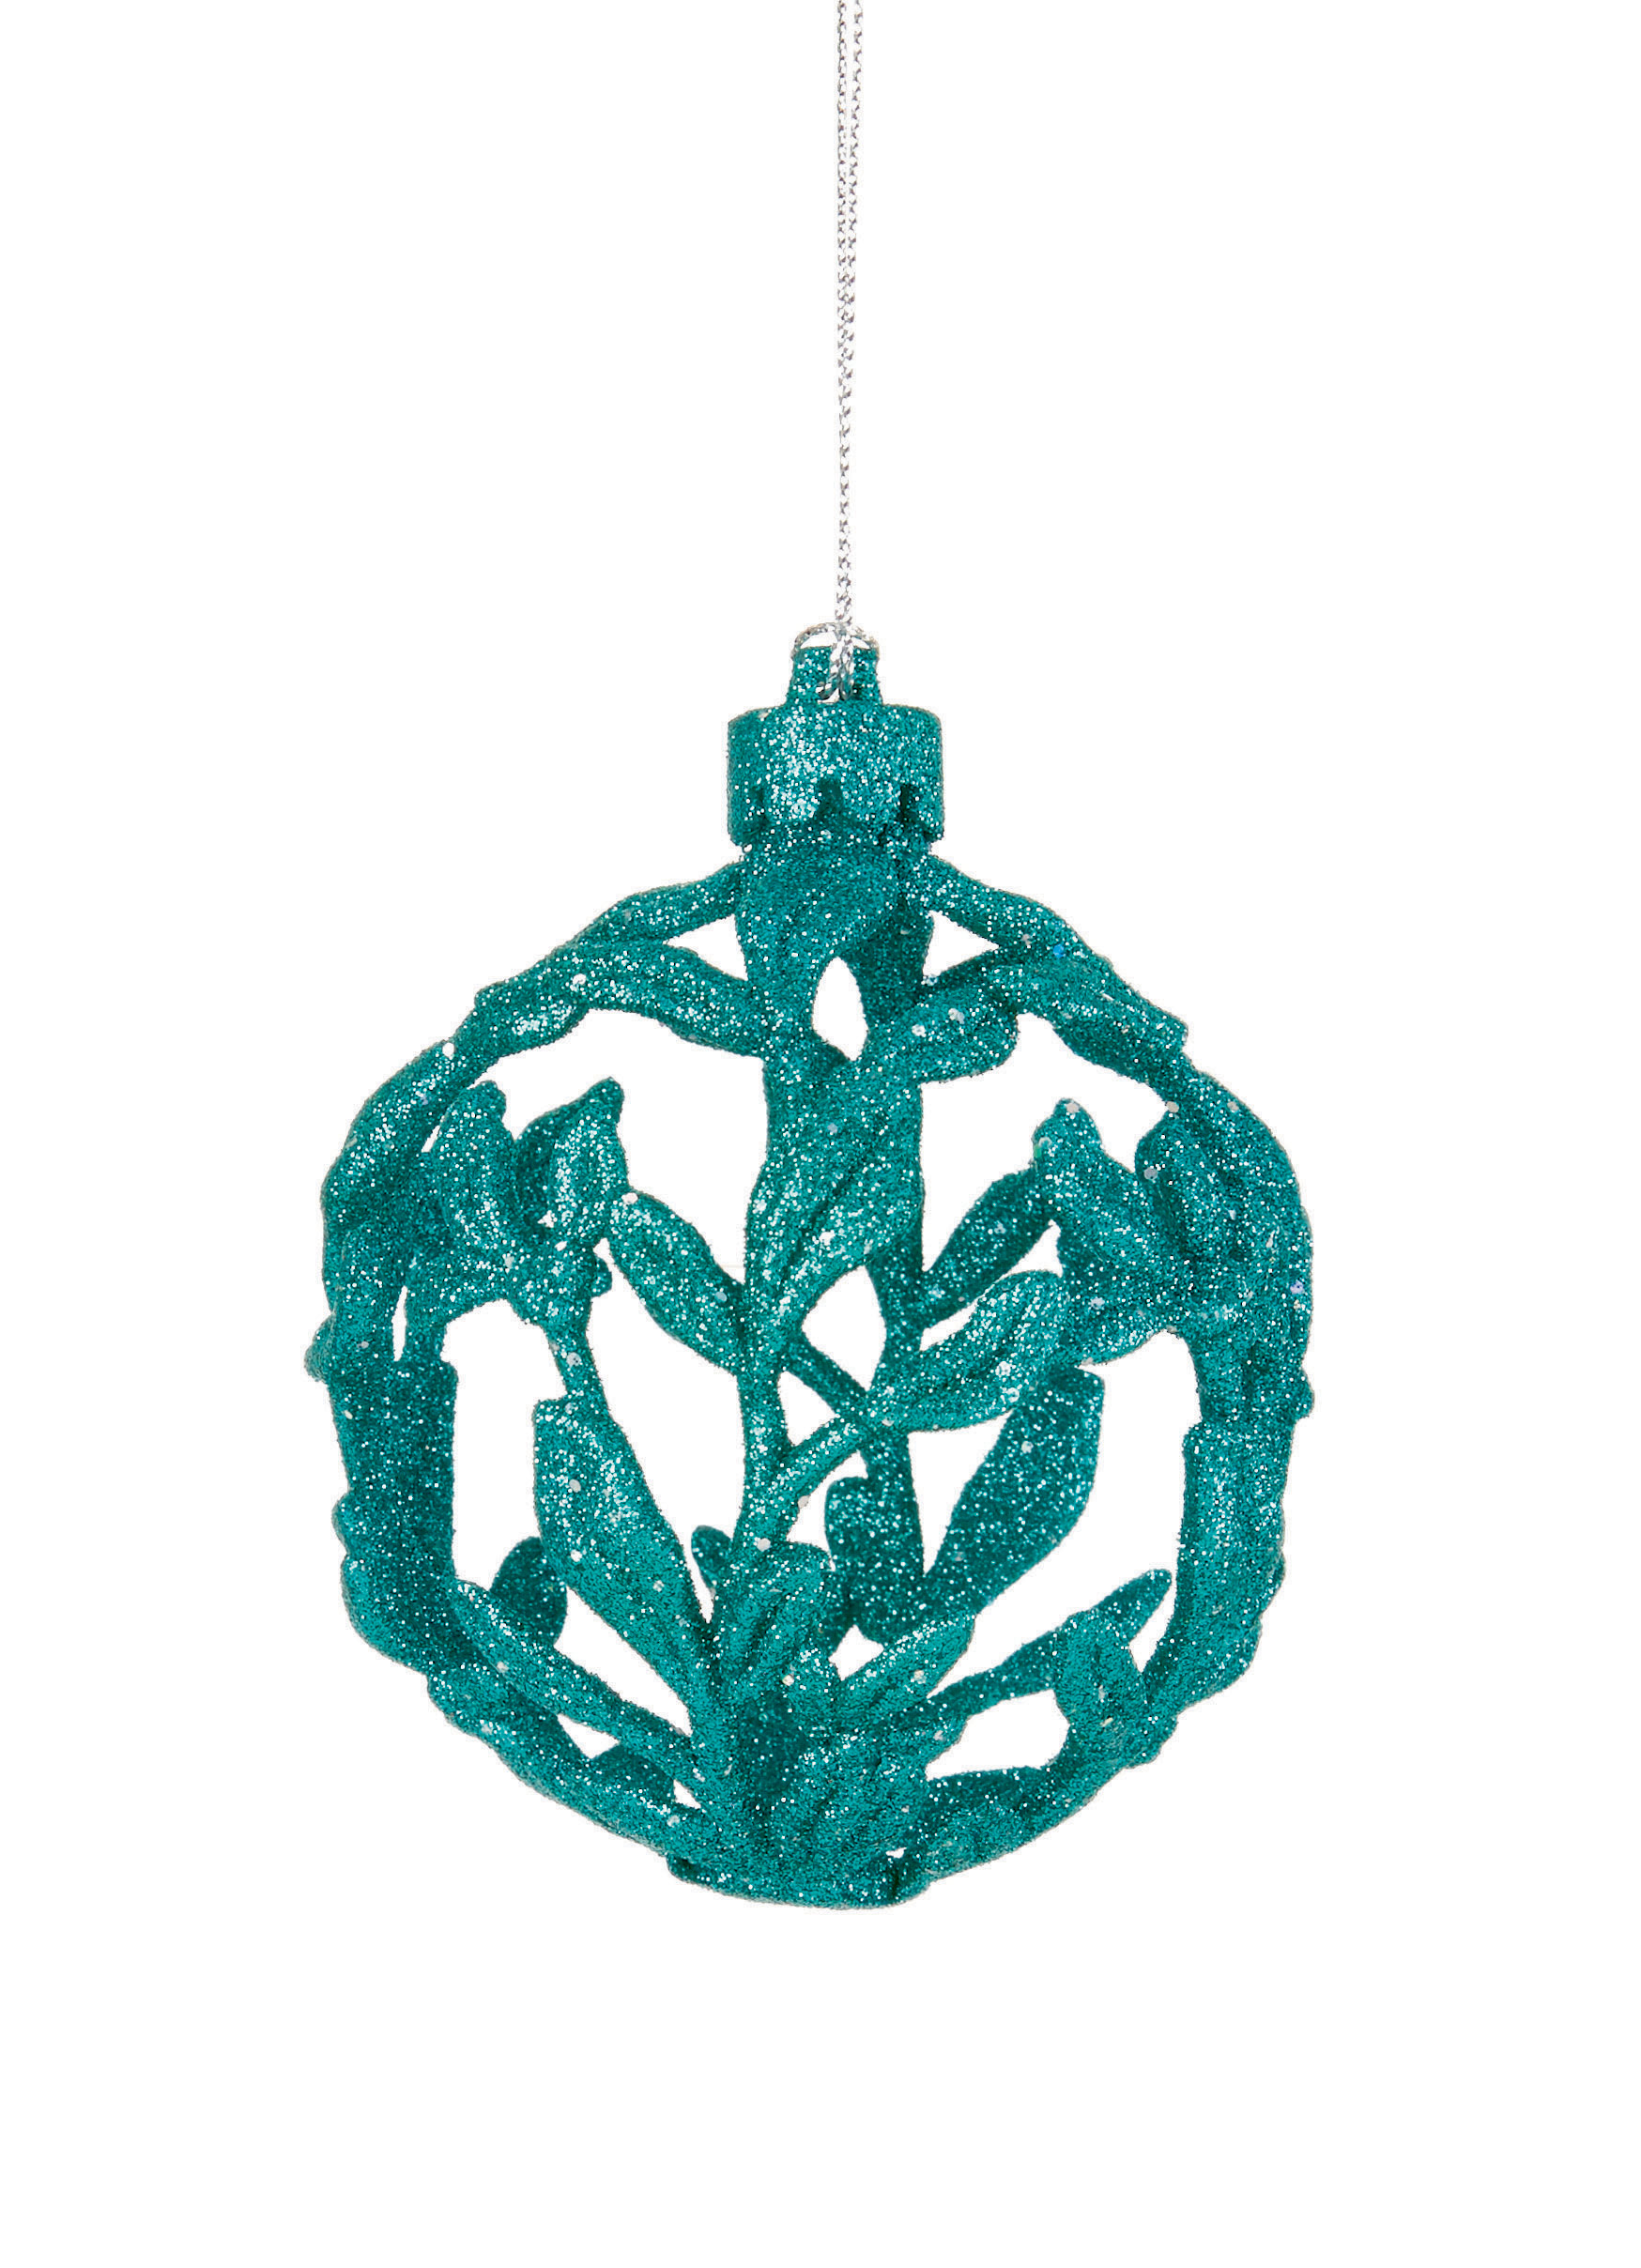 Turquoise d filigree baubles christmas tree hanging